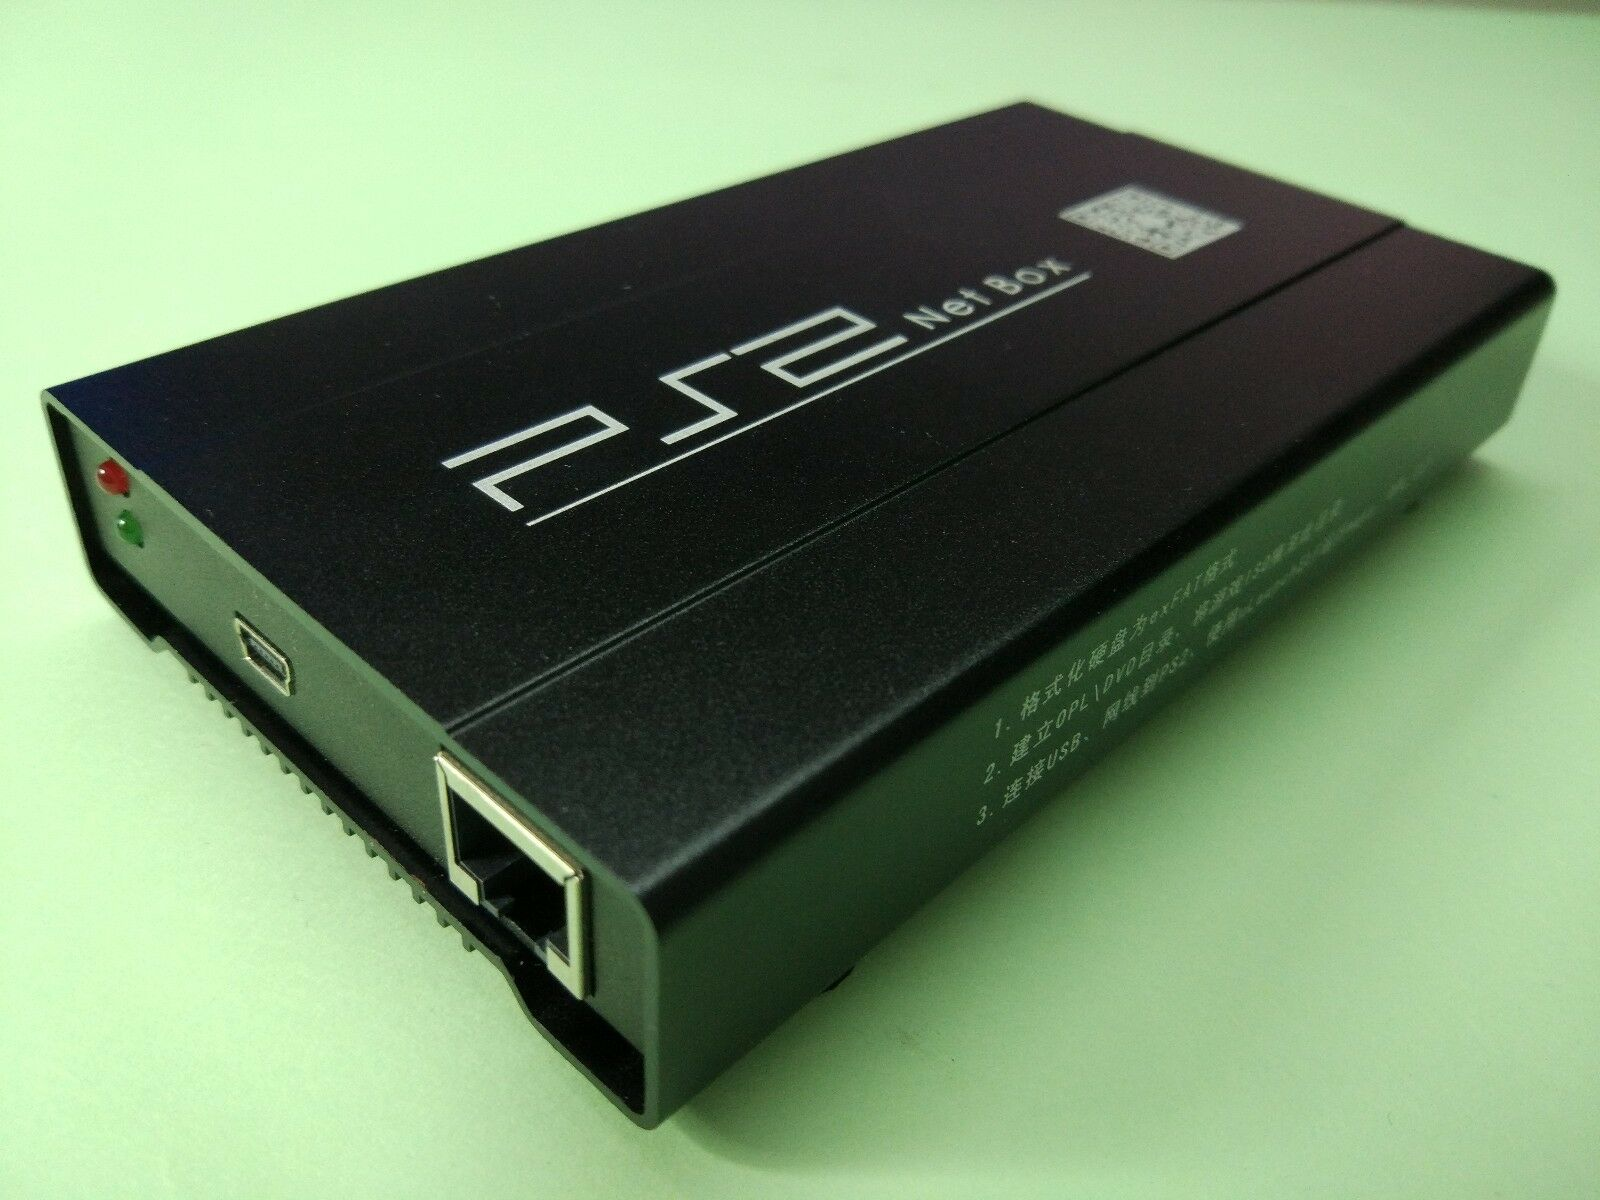 PS2NetBox ISO manager network adapter for Sony PS2 7xxxx9xxxx Video